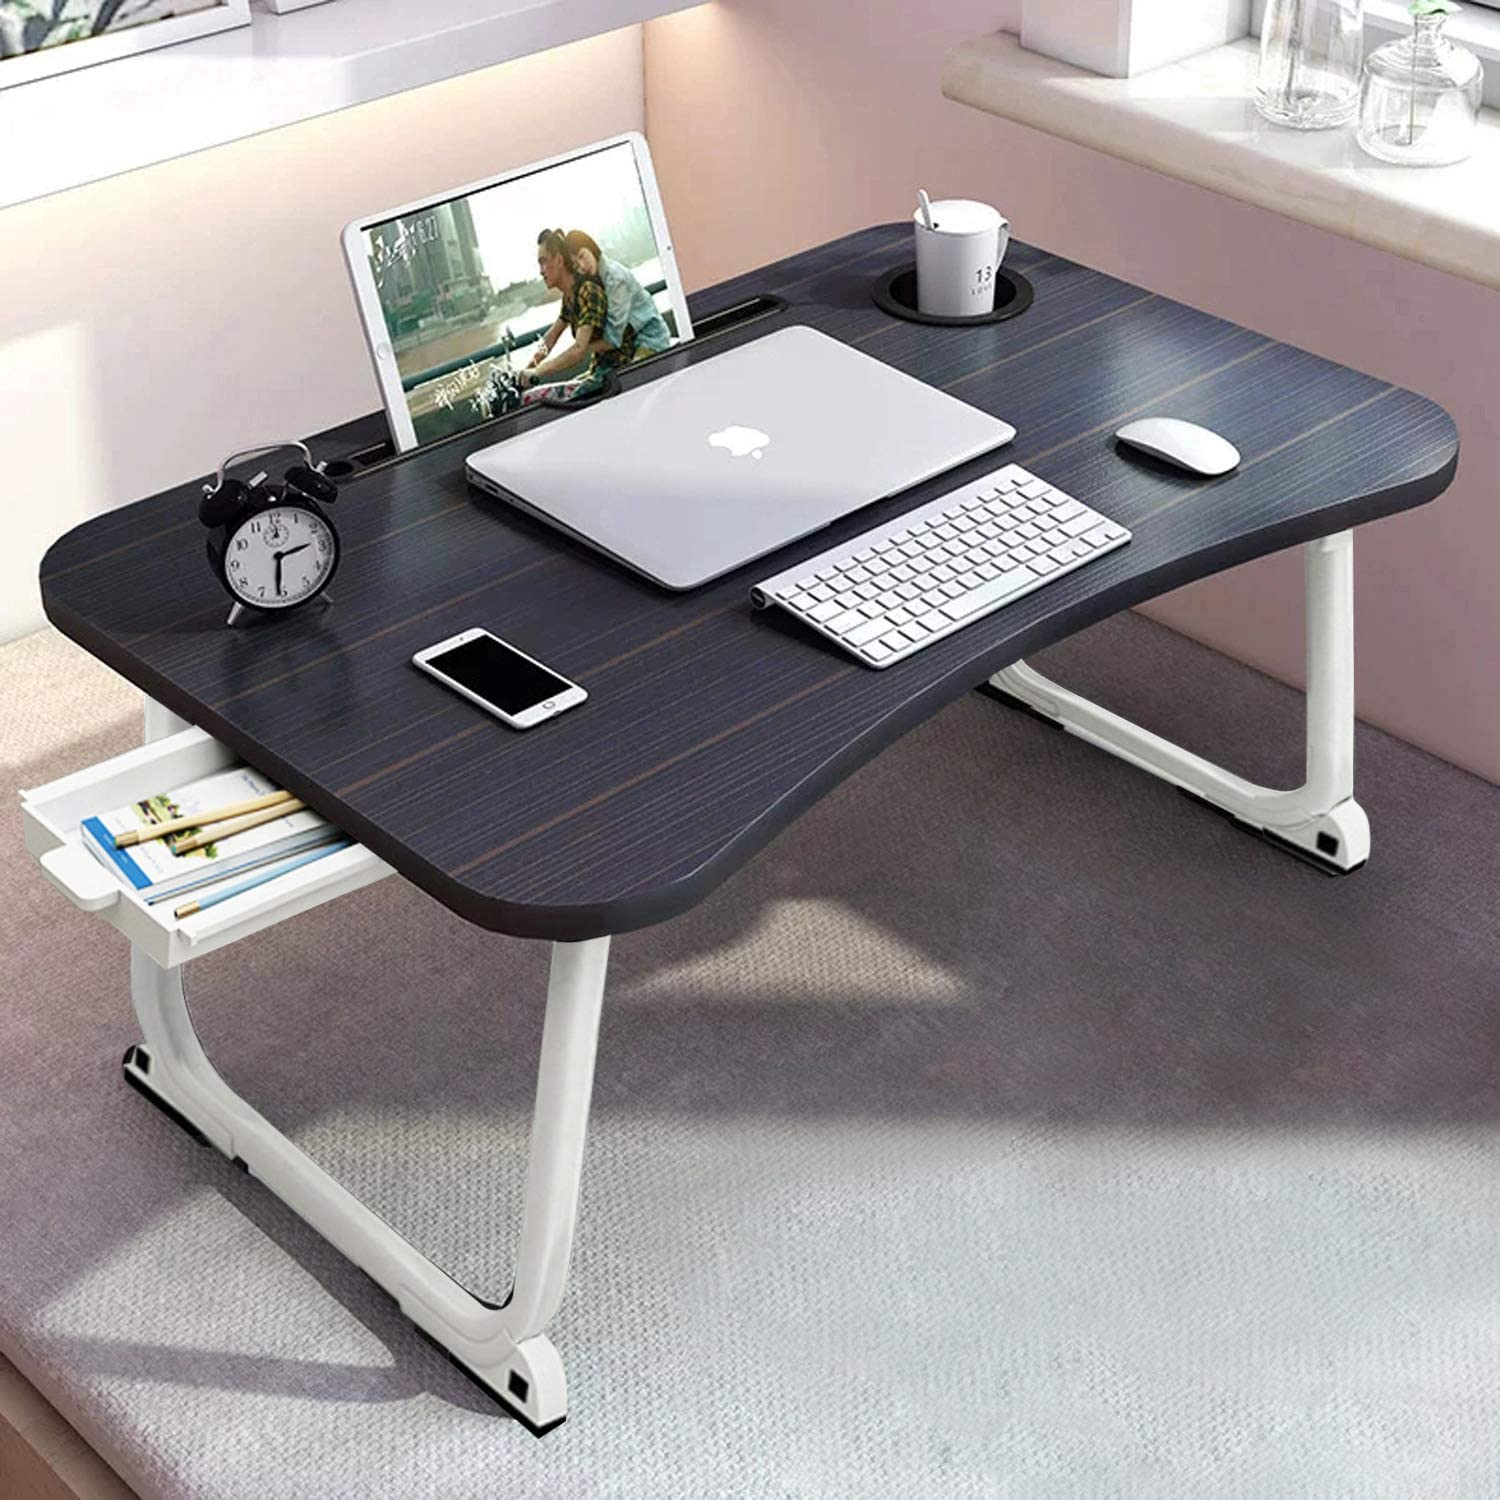 """Folding Laptop Desk, Bed Table with Beverage Holder, Notebook Stand Holder with Storage Drawer, Lap Bed Tray for Student Adult Eating Reading Watching on Couch Sofa Hospital(23.6""""x15.7""""x11"""")"""